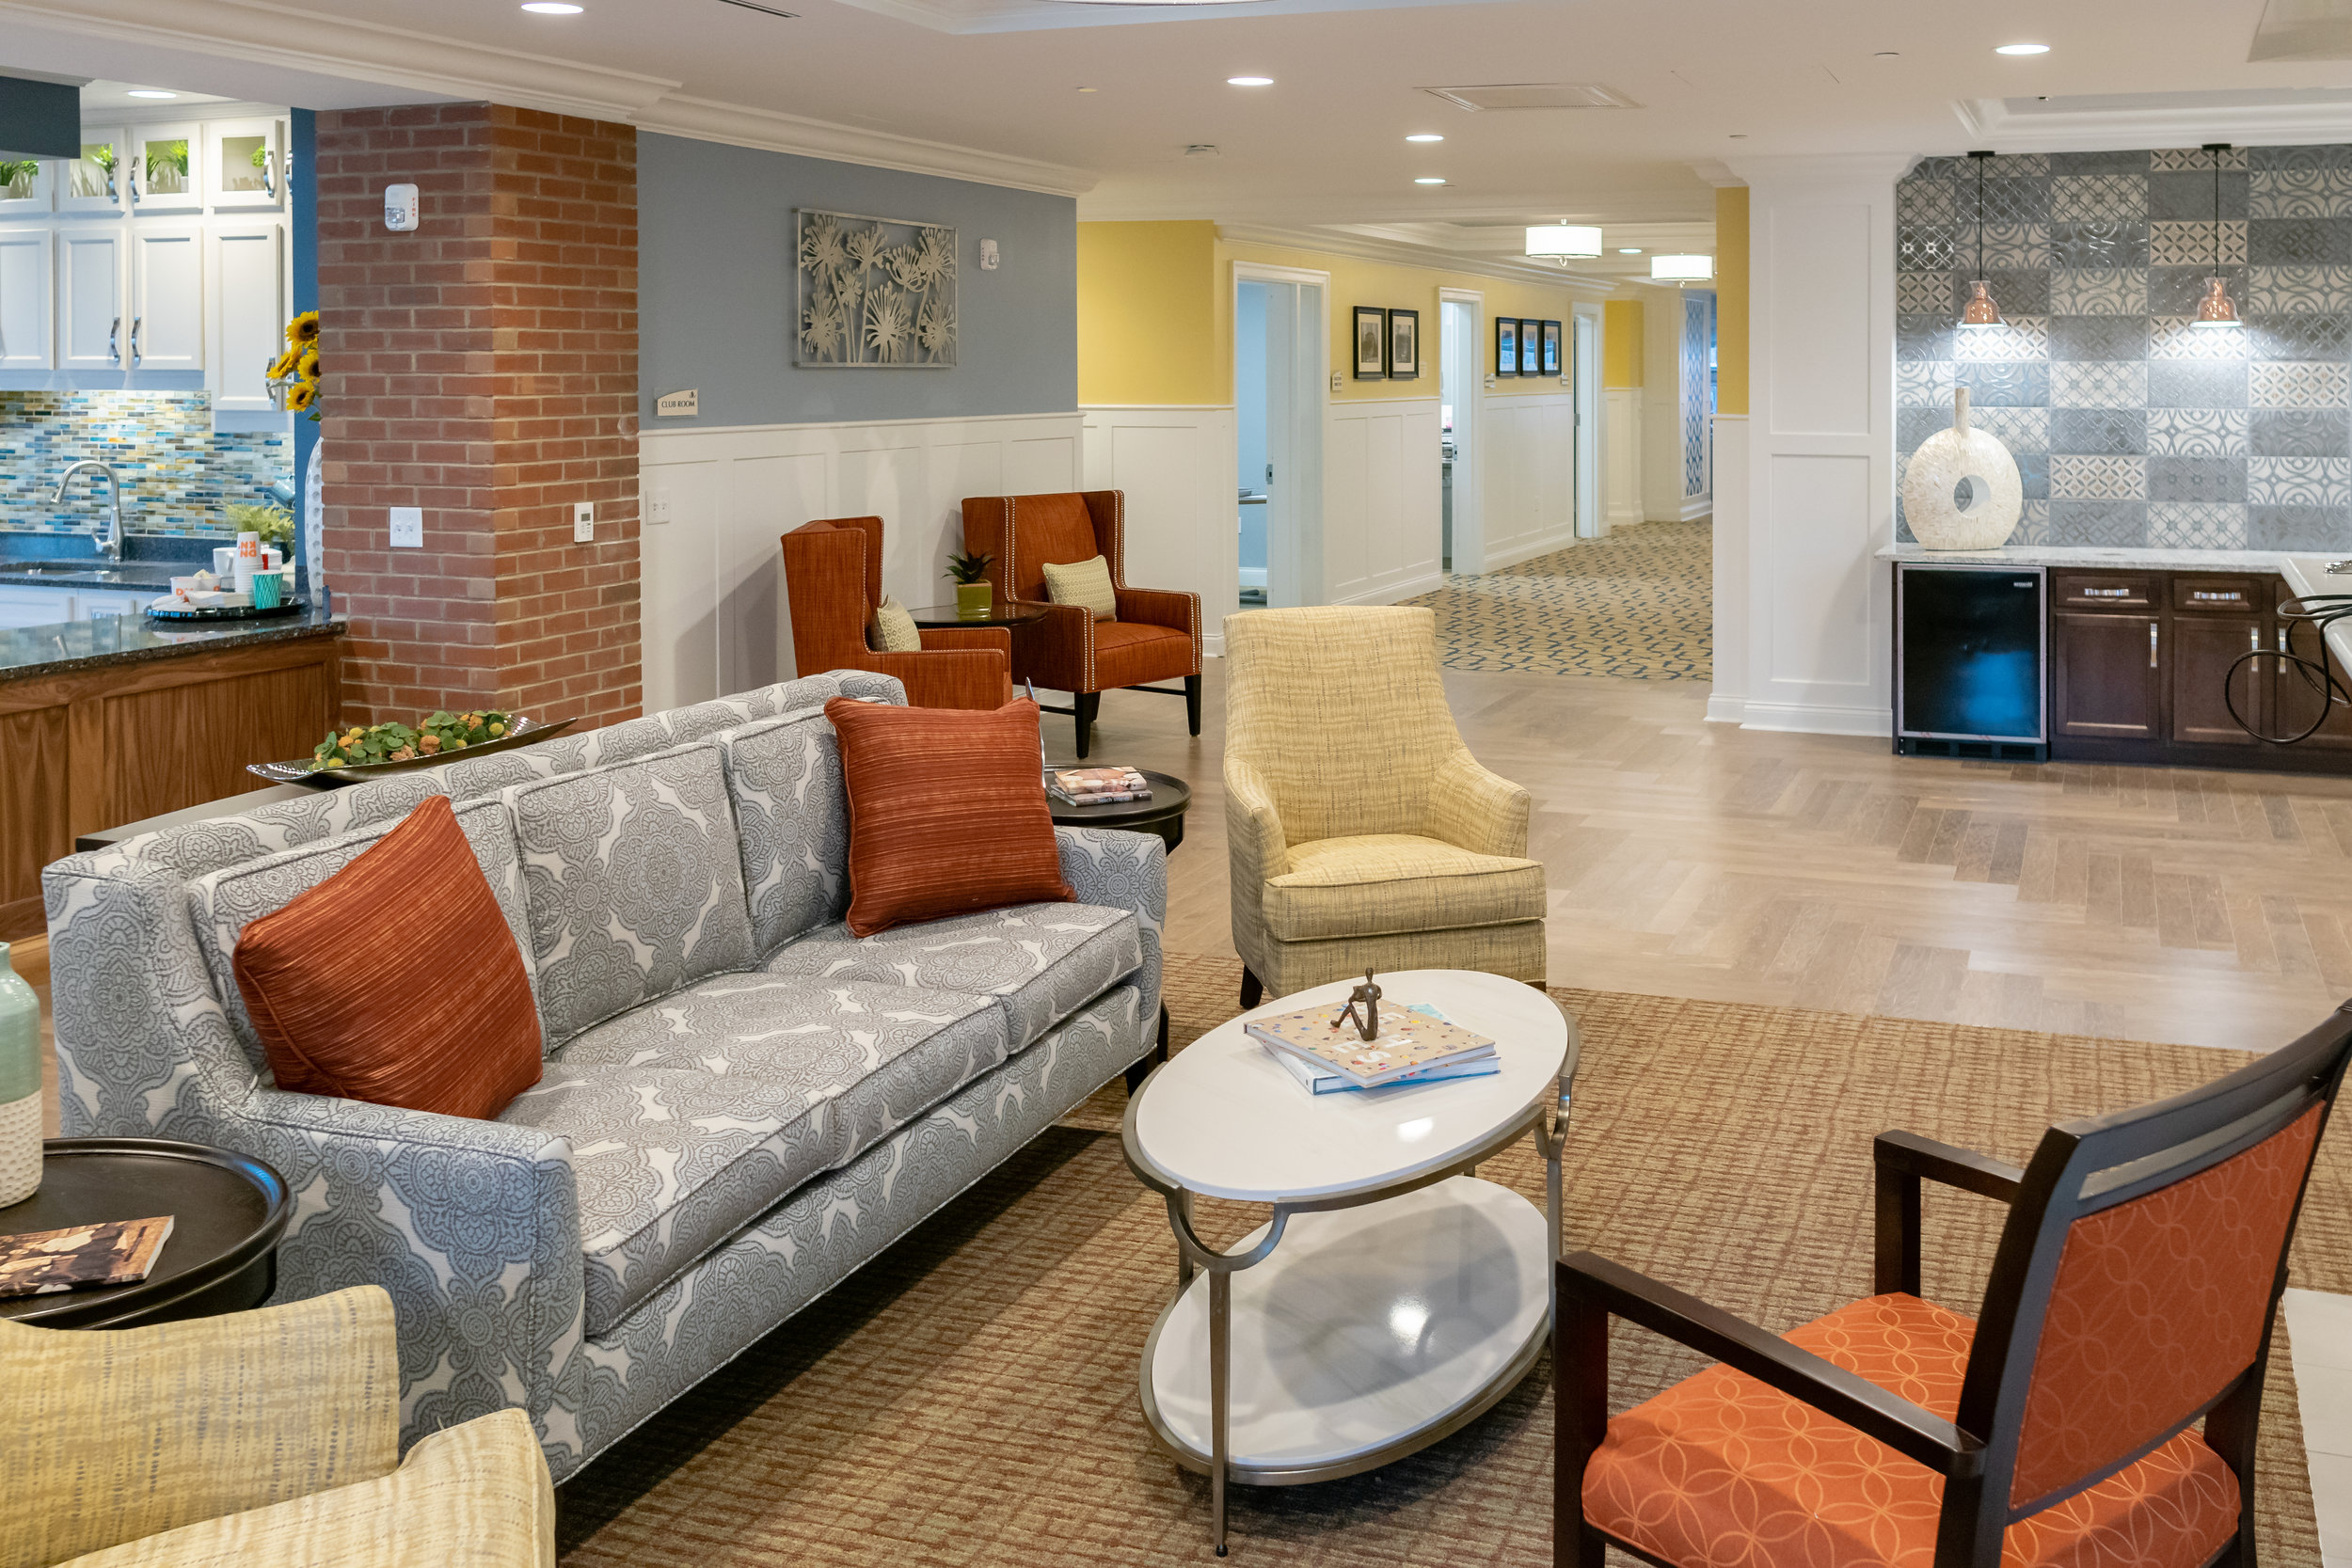 Main Lobby The Chelsea Senior Living Facility Built by March Associates Construction. We build luxury residential buildings.